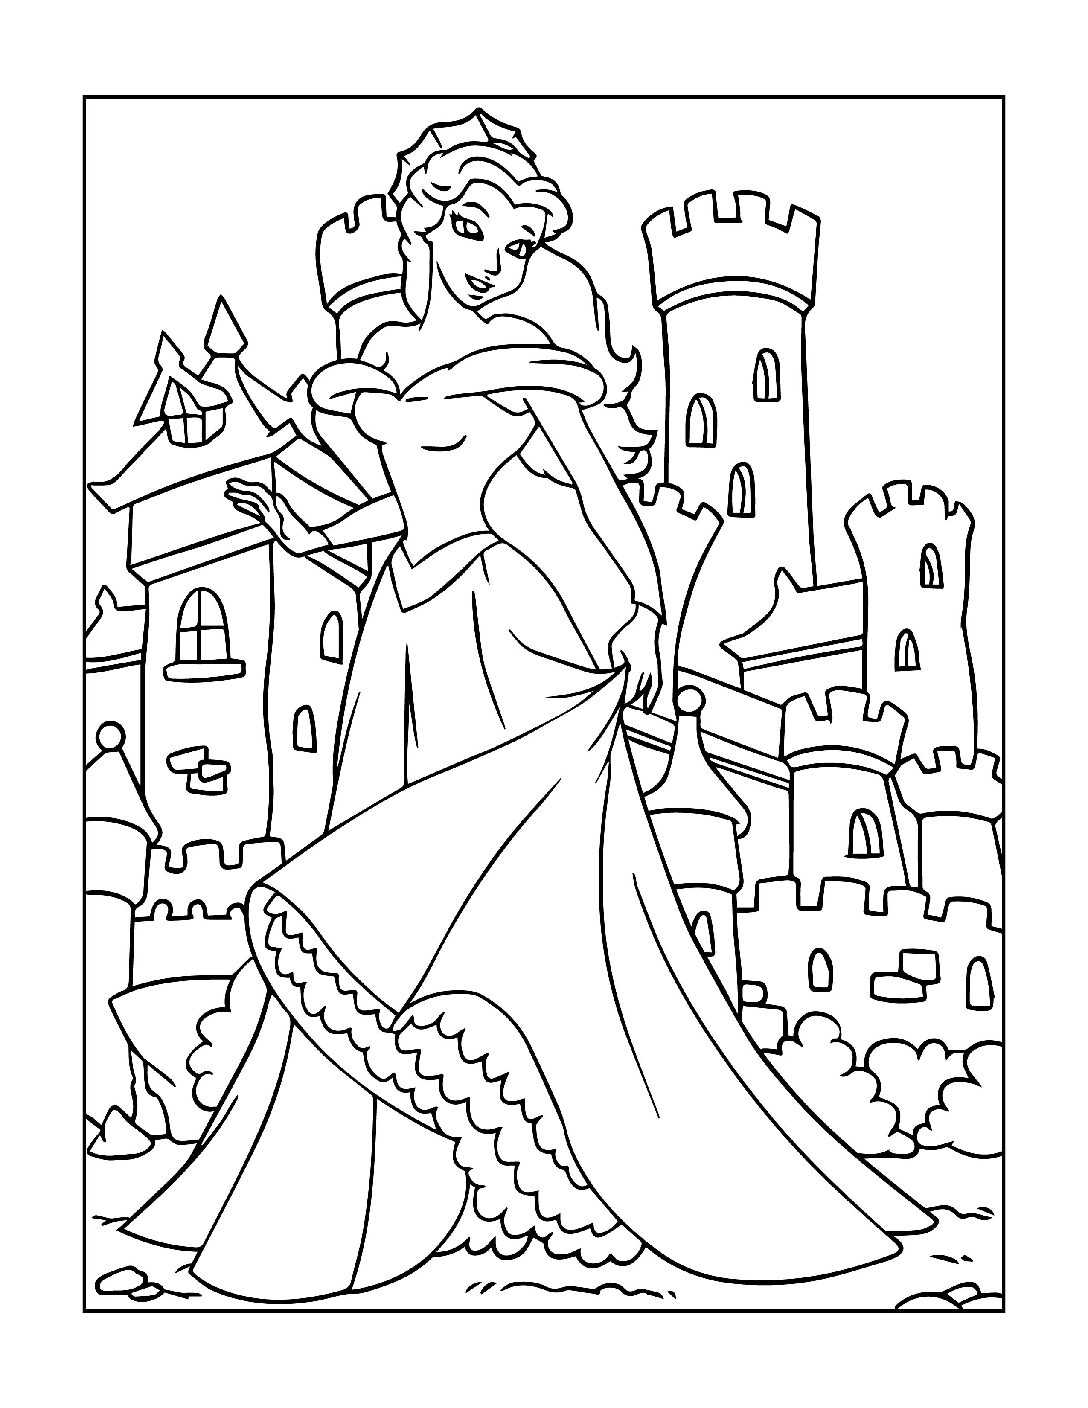 Coloring-Pages-Princess-4-01-pdf Free Printable Princesses Colouring Pages